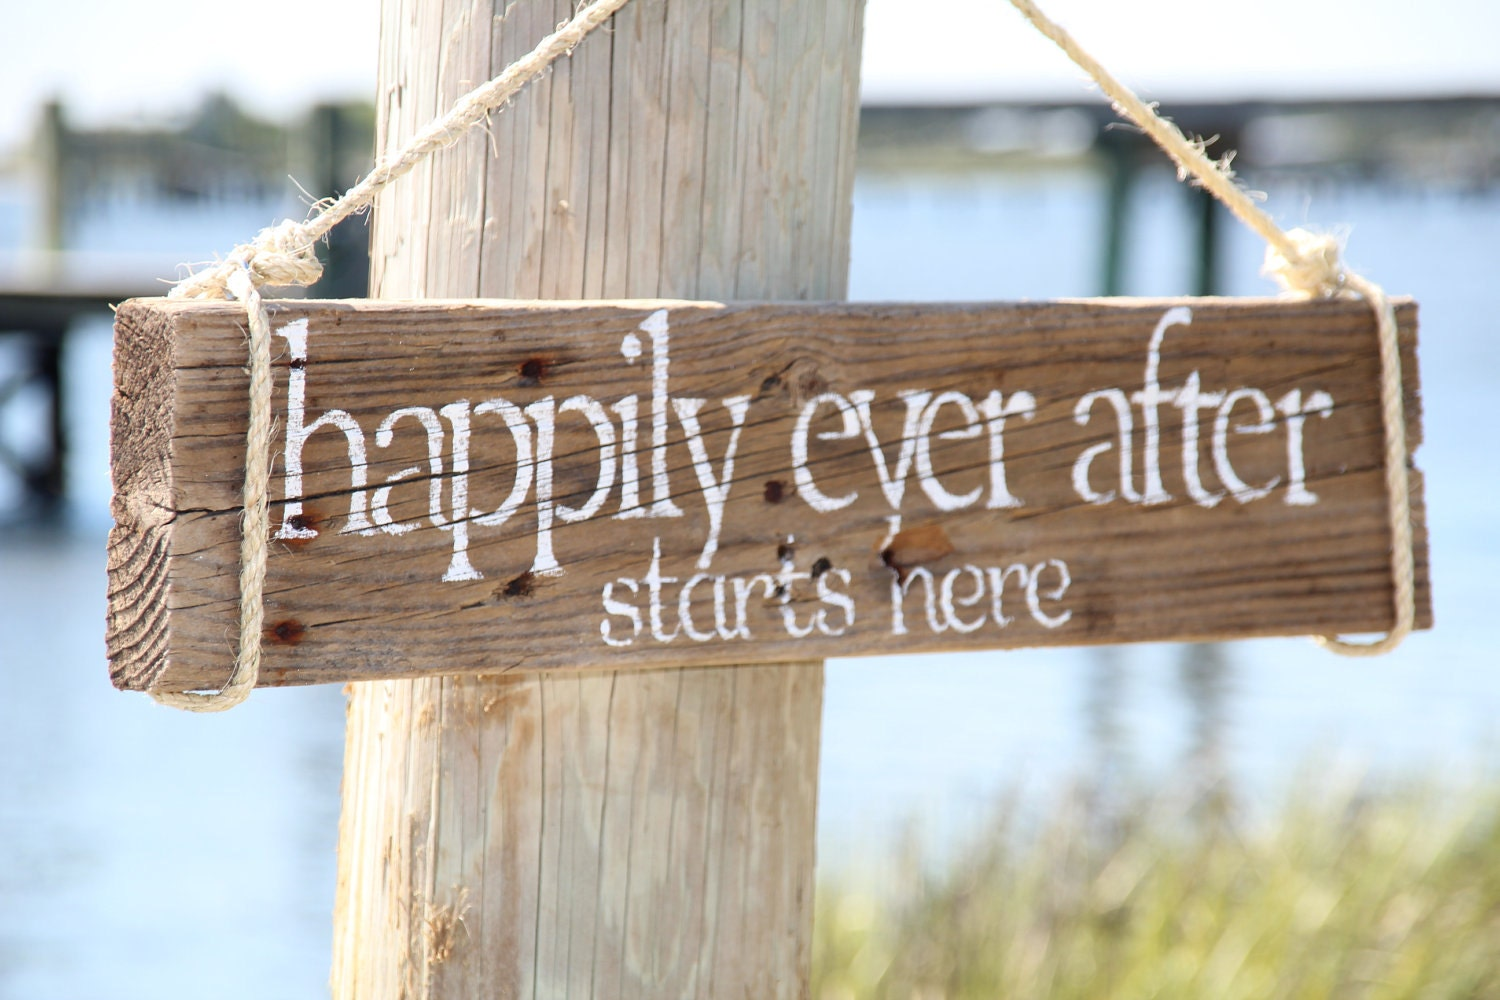 Happily Ever After Starts Herereclaimed Wood Wedding Sign. Make Your Own Prints. Poison Signs Of Stroke. Cartoon Network Murals. Easy Outdoor Murals. Rzr Stickers. 6 Month Signs Of Stroke. Bianca Pettis Murals. Pretty Little Liars Signs